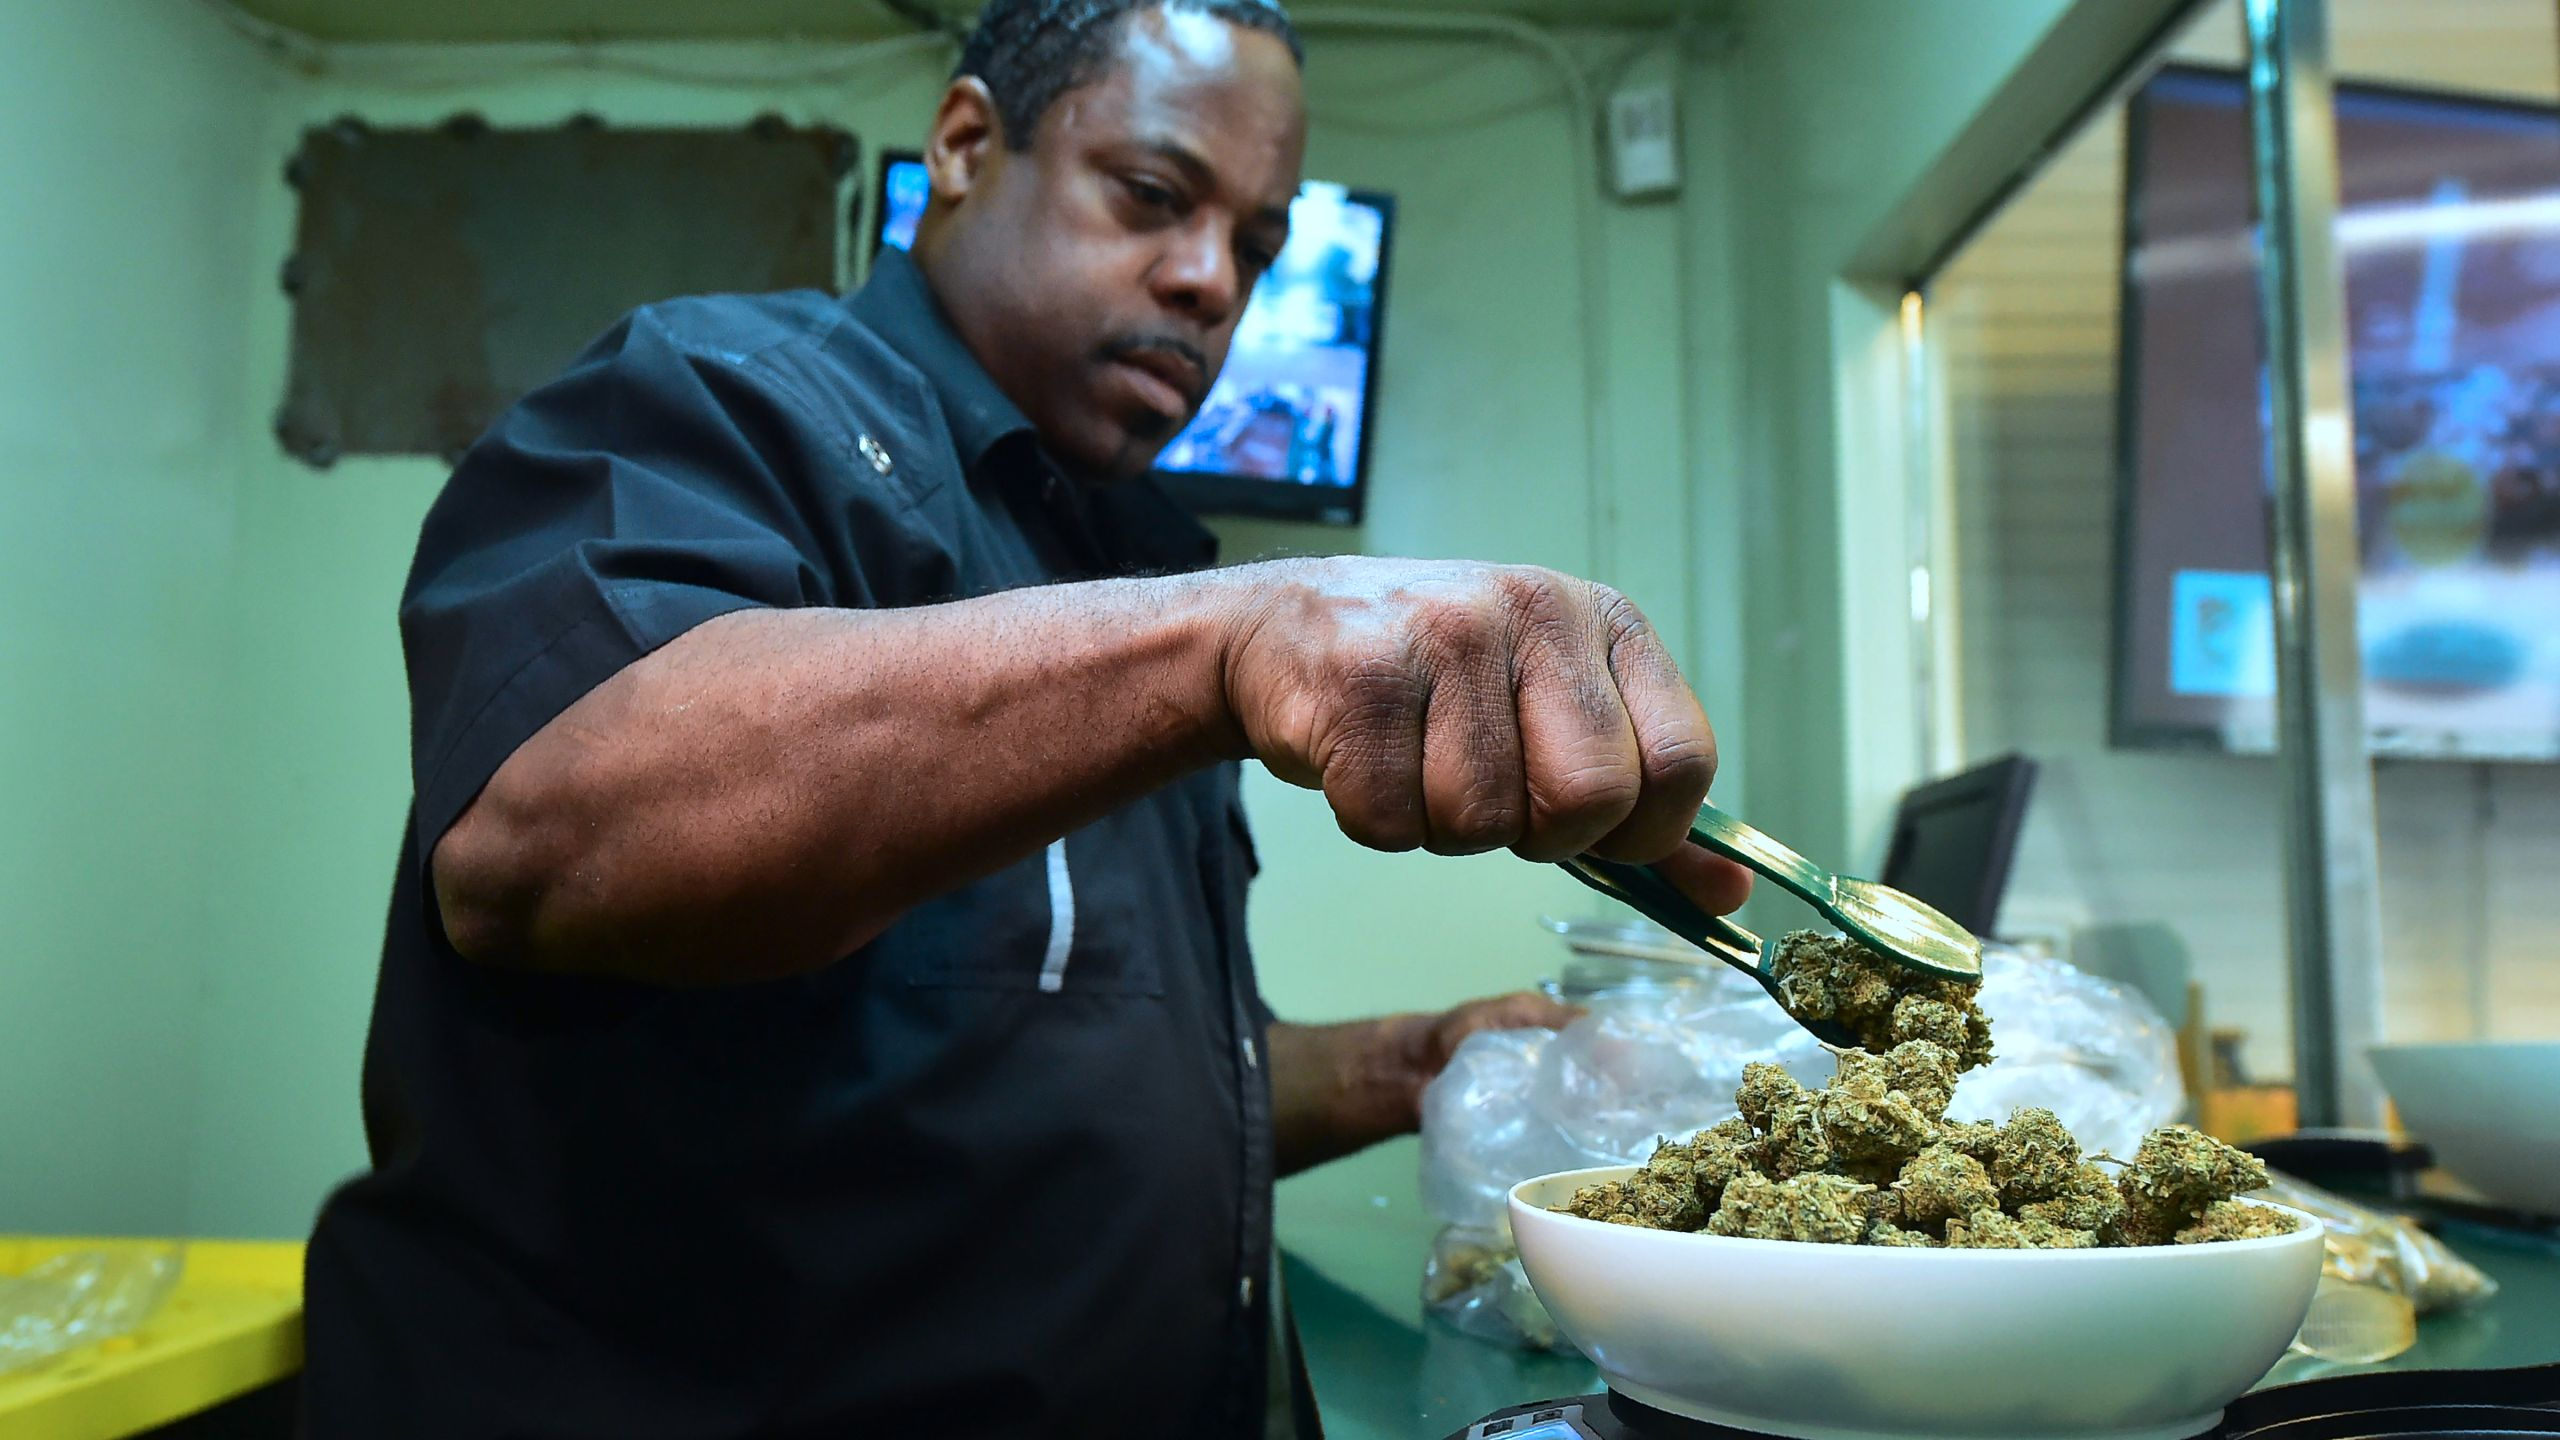 Eddie Irby weighs the marijuana at Virgil Grant's dispensary in Los Angeles, on Feb. 8, 2018. (Credit: FREDERIC J. BROWN/AFP/Getty Images)